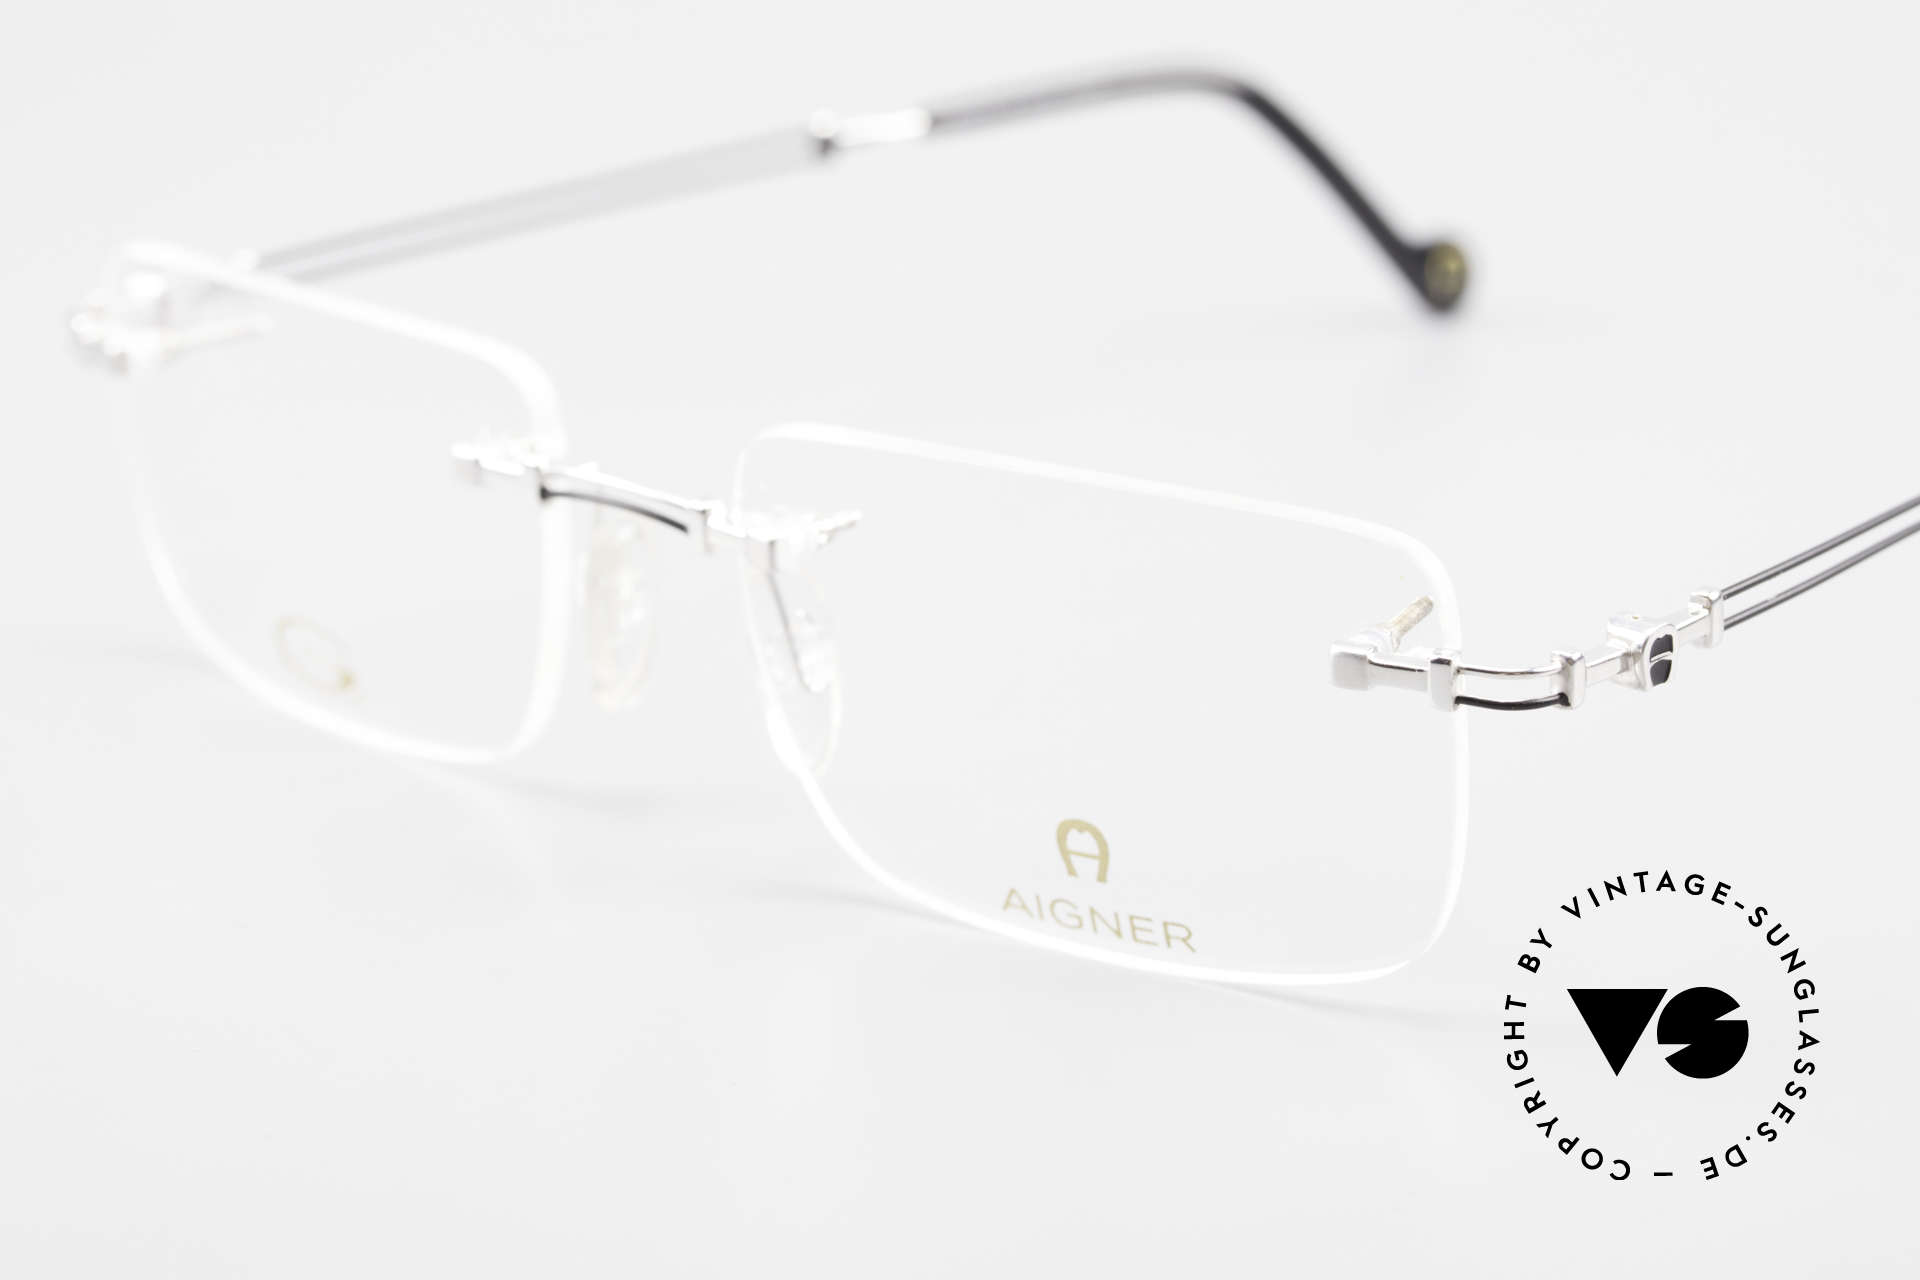 Aigner EA496 Rimless 90's Vintage Glasses, craftsmanship, made in Germany, can be glazed optionally, Made for Men